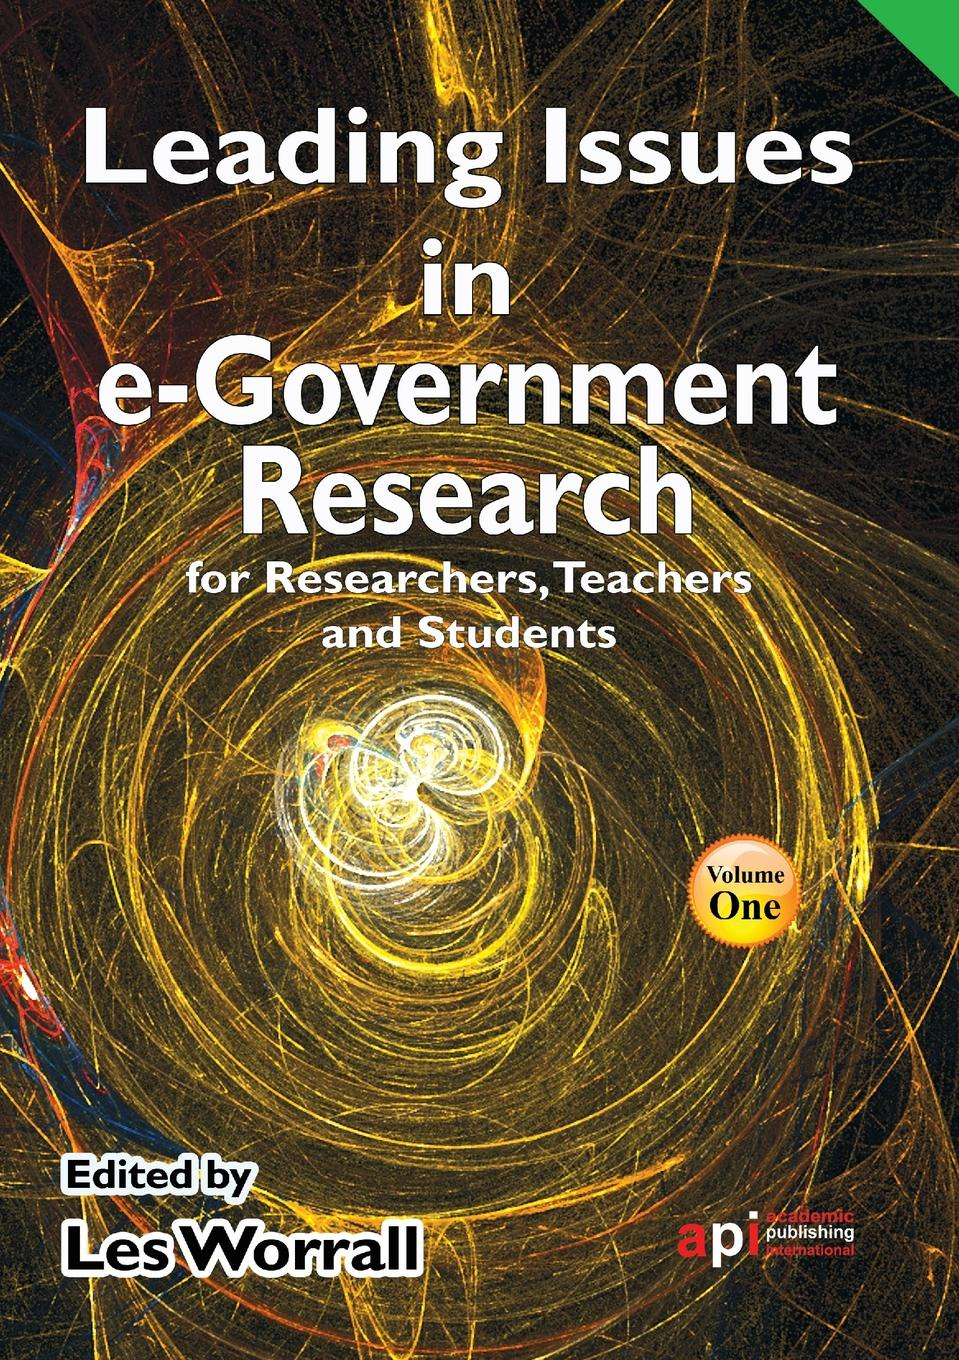 Leading Issues in E-Government Research for Researchers, Teachers and Students